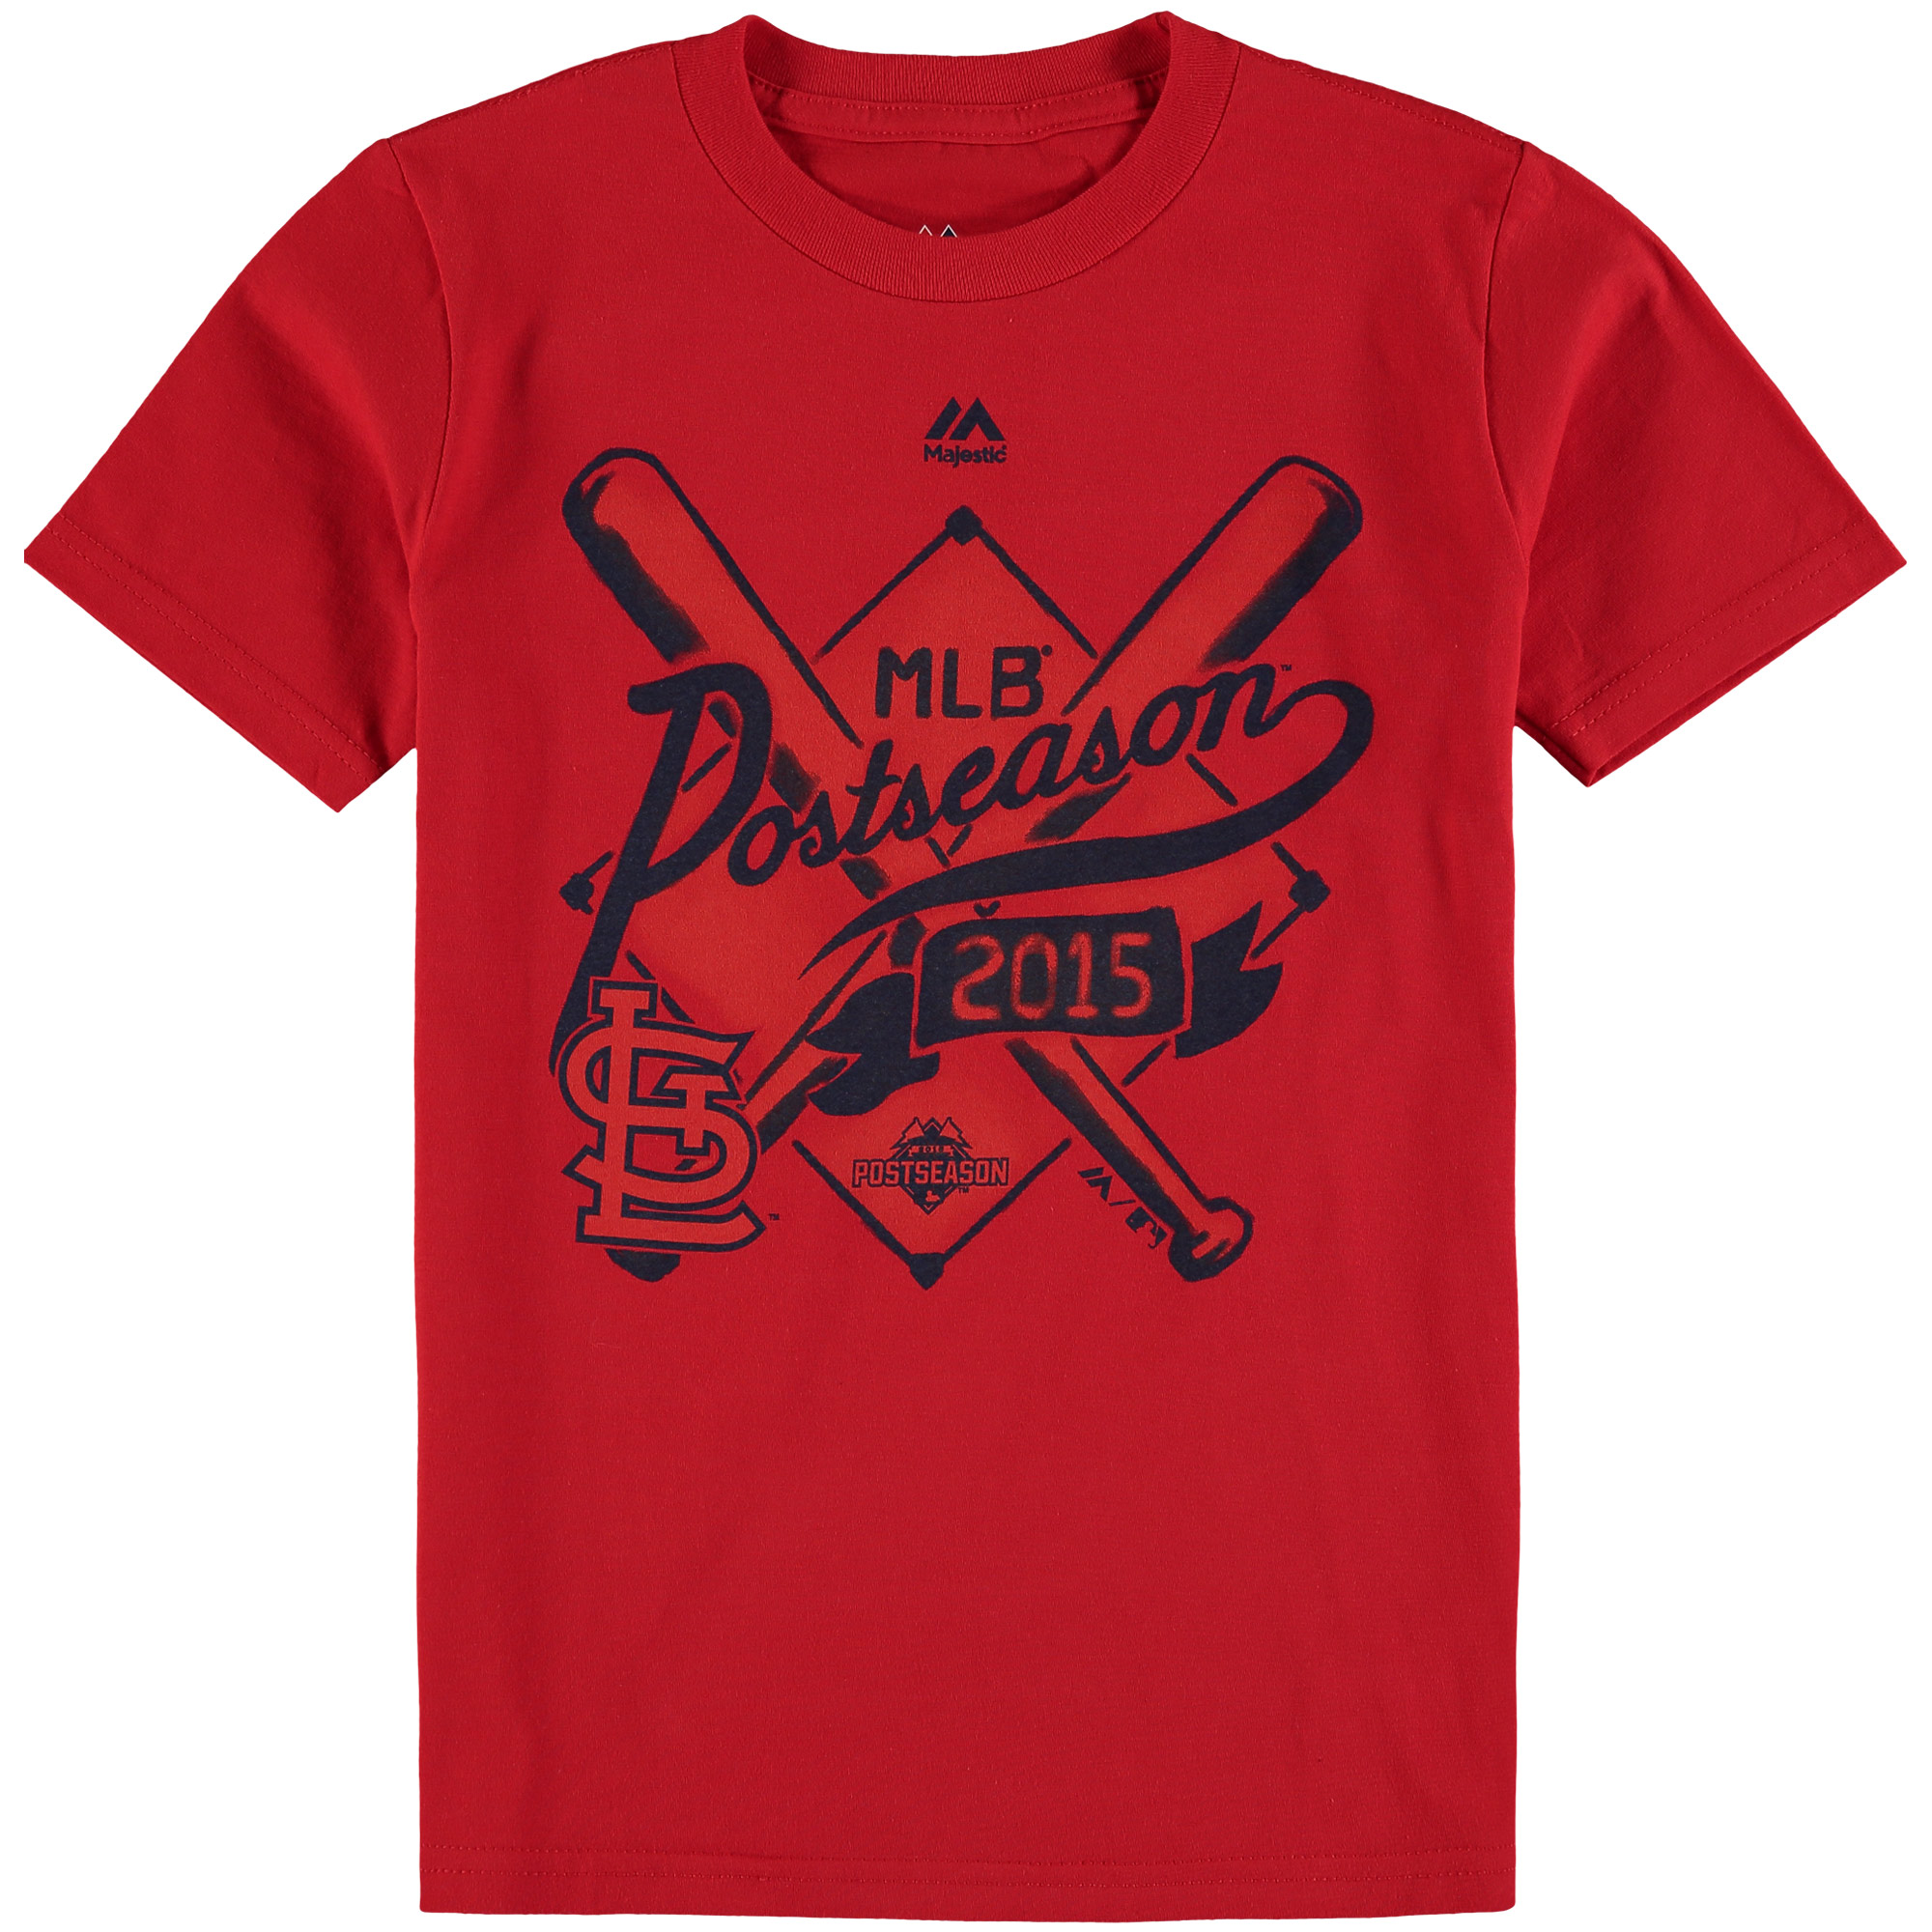 St. Louis Cardinals Majestic Youth 2015 Postseason Team Ambition T-Shirt - Red